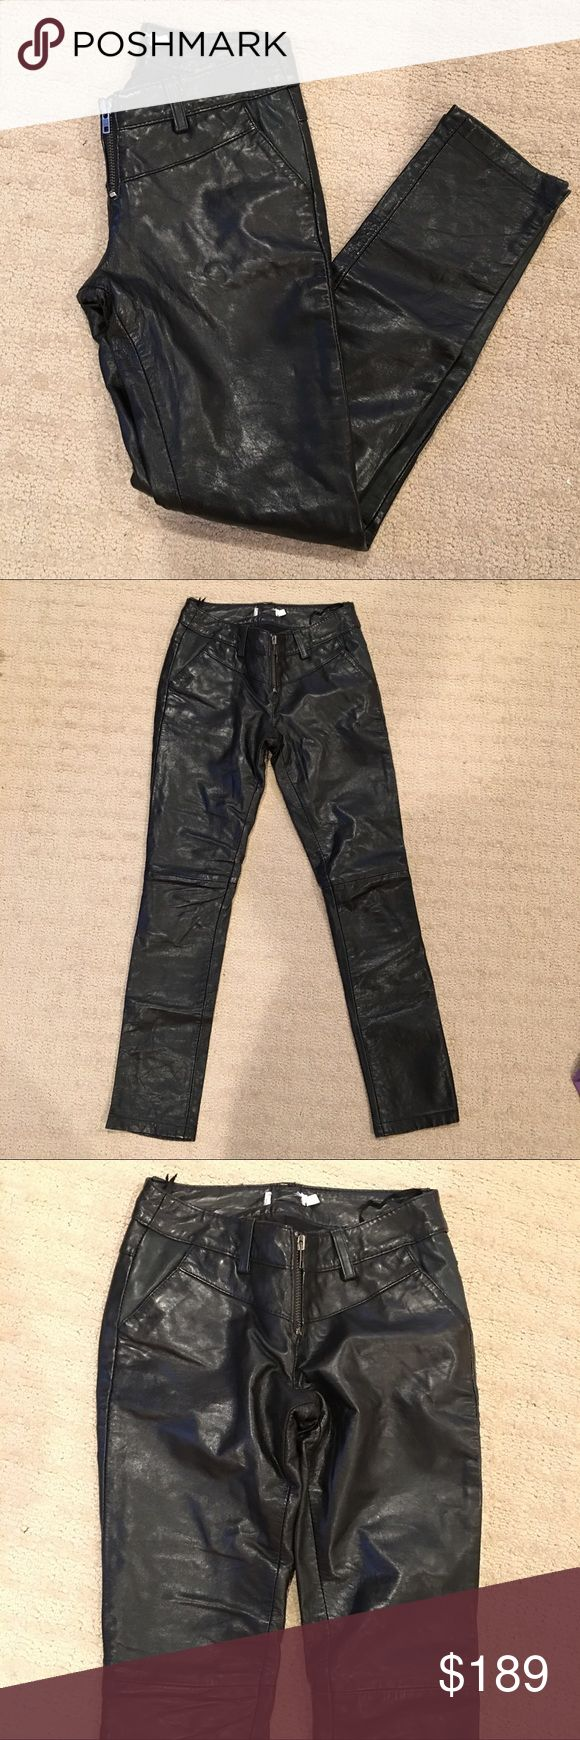 "Topshop genuine leather black skinny pants 00 XXS Genuine leather skinny pants from Topshop (tag is cut). I used to love these but 2 kids later and they don't fit anymore. Perfect length to wear with heels, flats, sandals. Snug fit, belt loops, pockets. Excellent condition except the exposed zipper is missing two bottom teeth. Still works, I wore them this way, just have to be careful getting them on/off. Soft leather. It not too thin, lined to knee. Rise 7.25"" hip 34"" inseam 28.5"". Uk4, fit…"